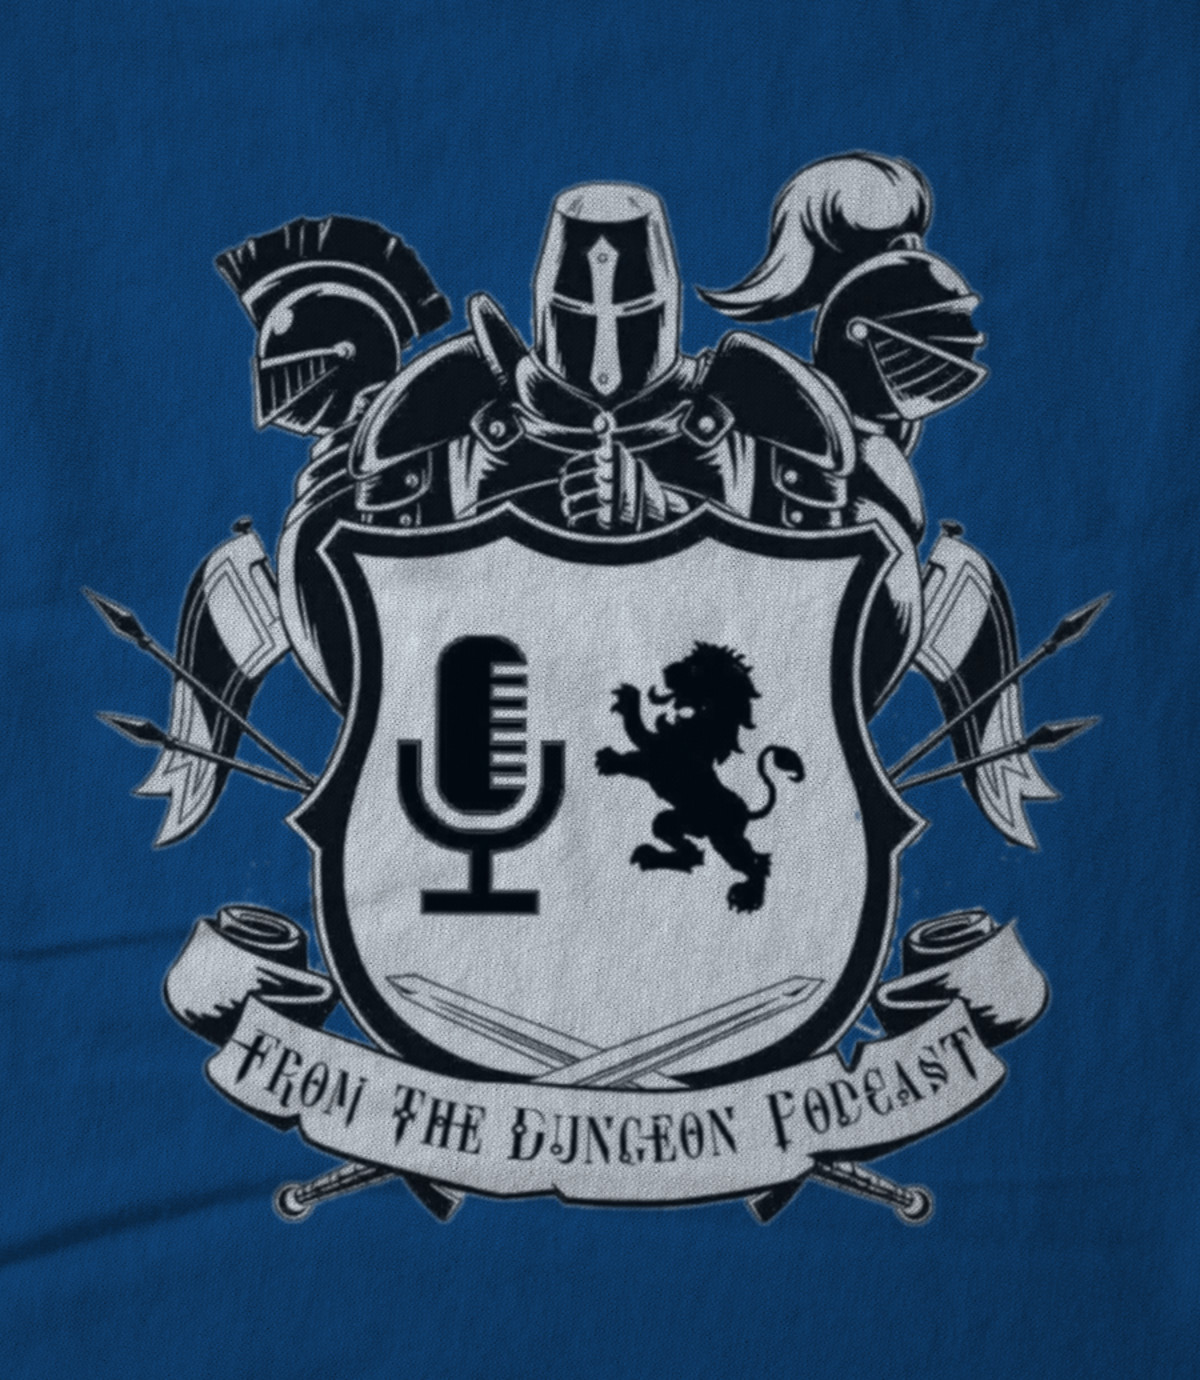 From the dungeon podcast  podcast logo 1526831537